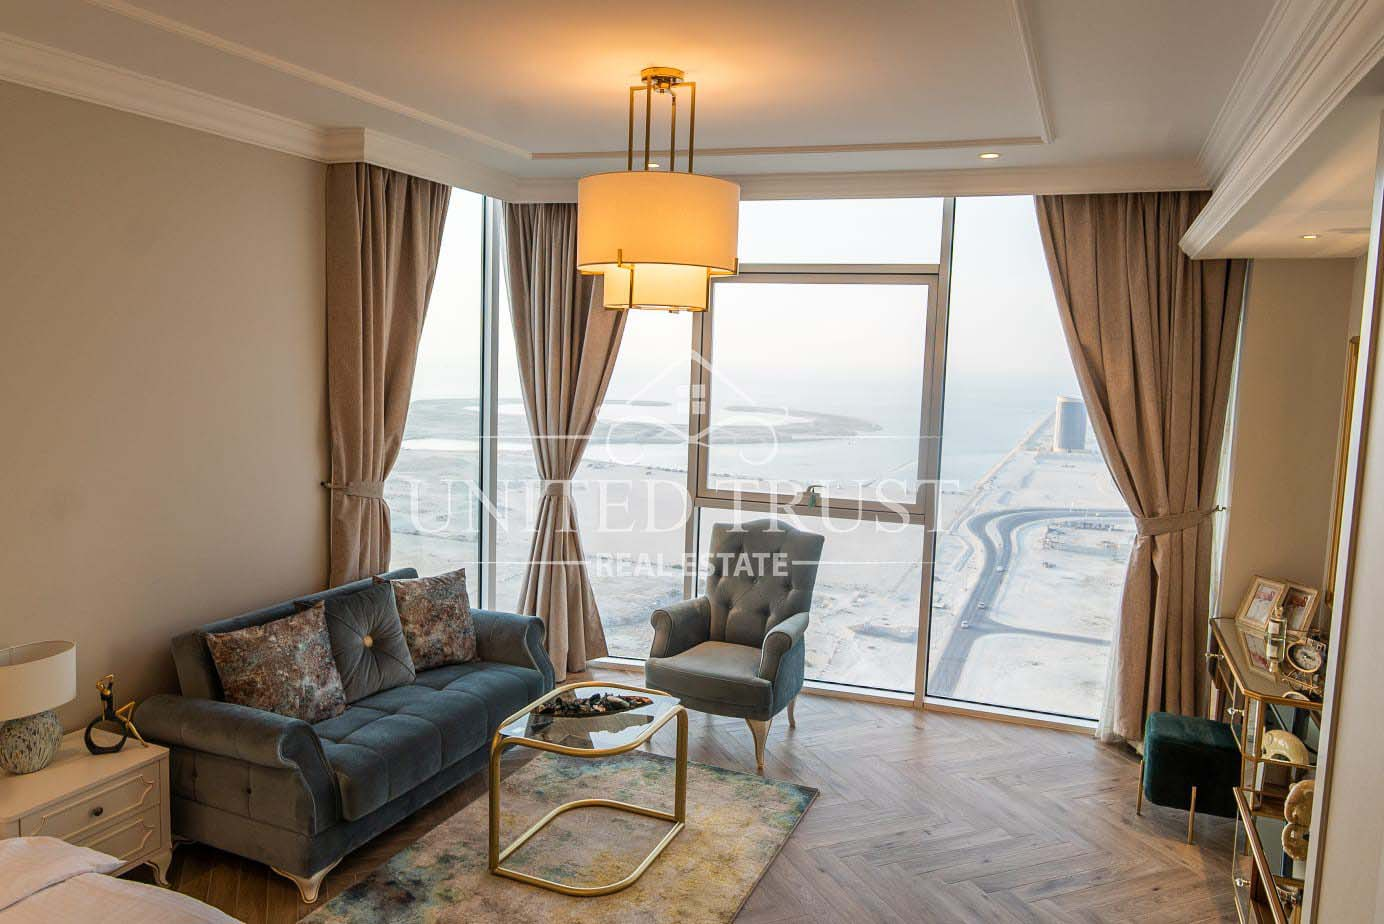 For rent new studio seef.prime location modern.fully furnished sea view. Ref: SEE-AB-009